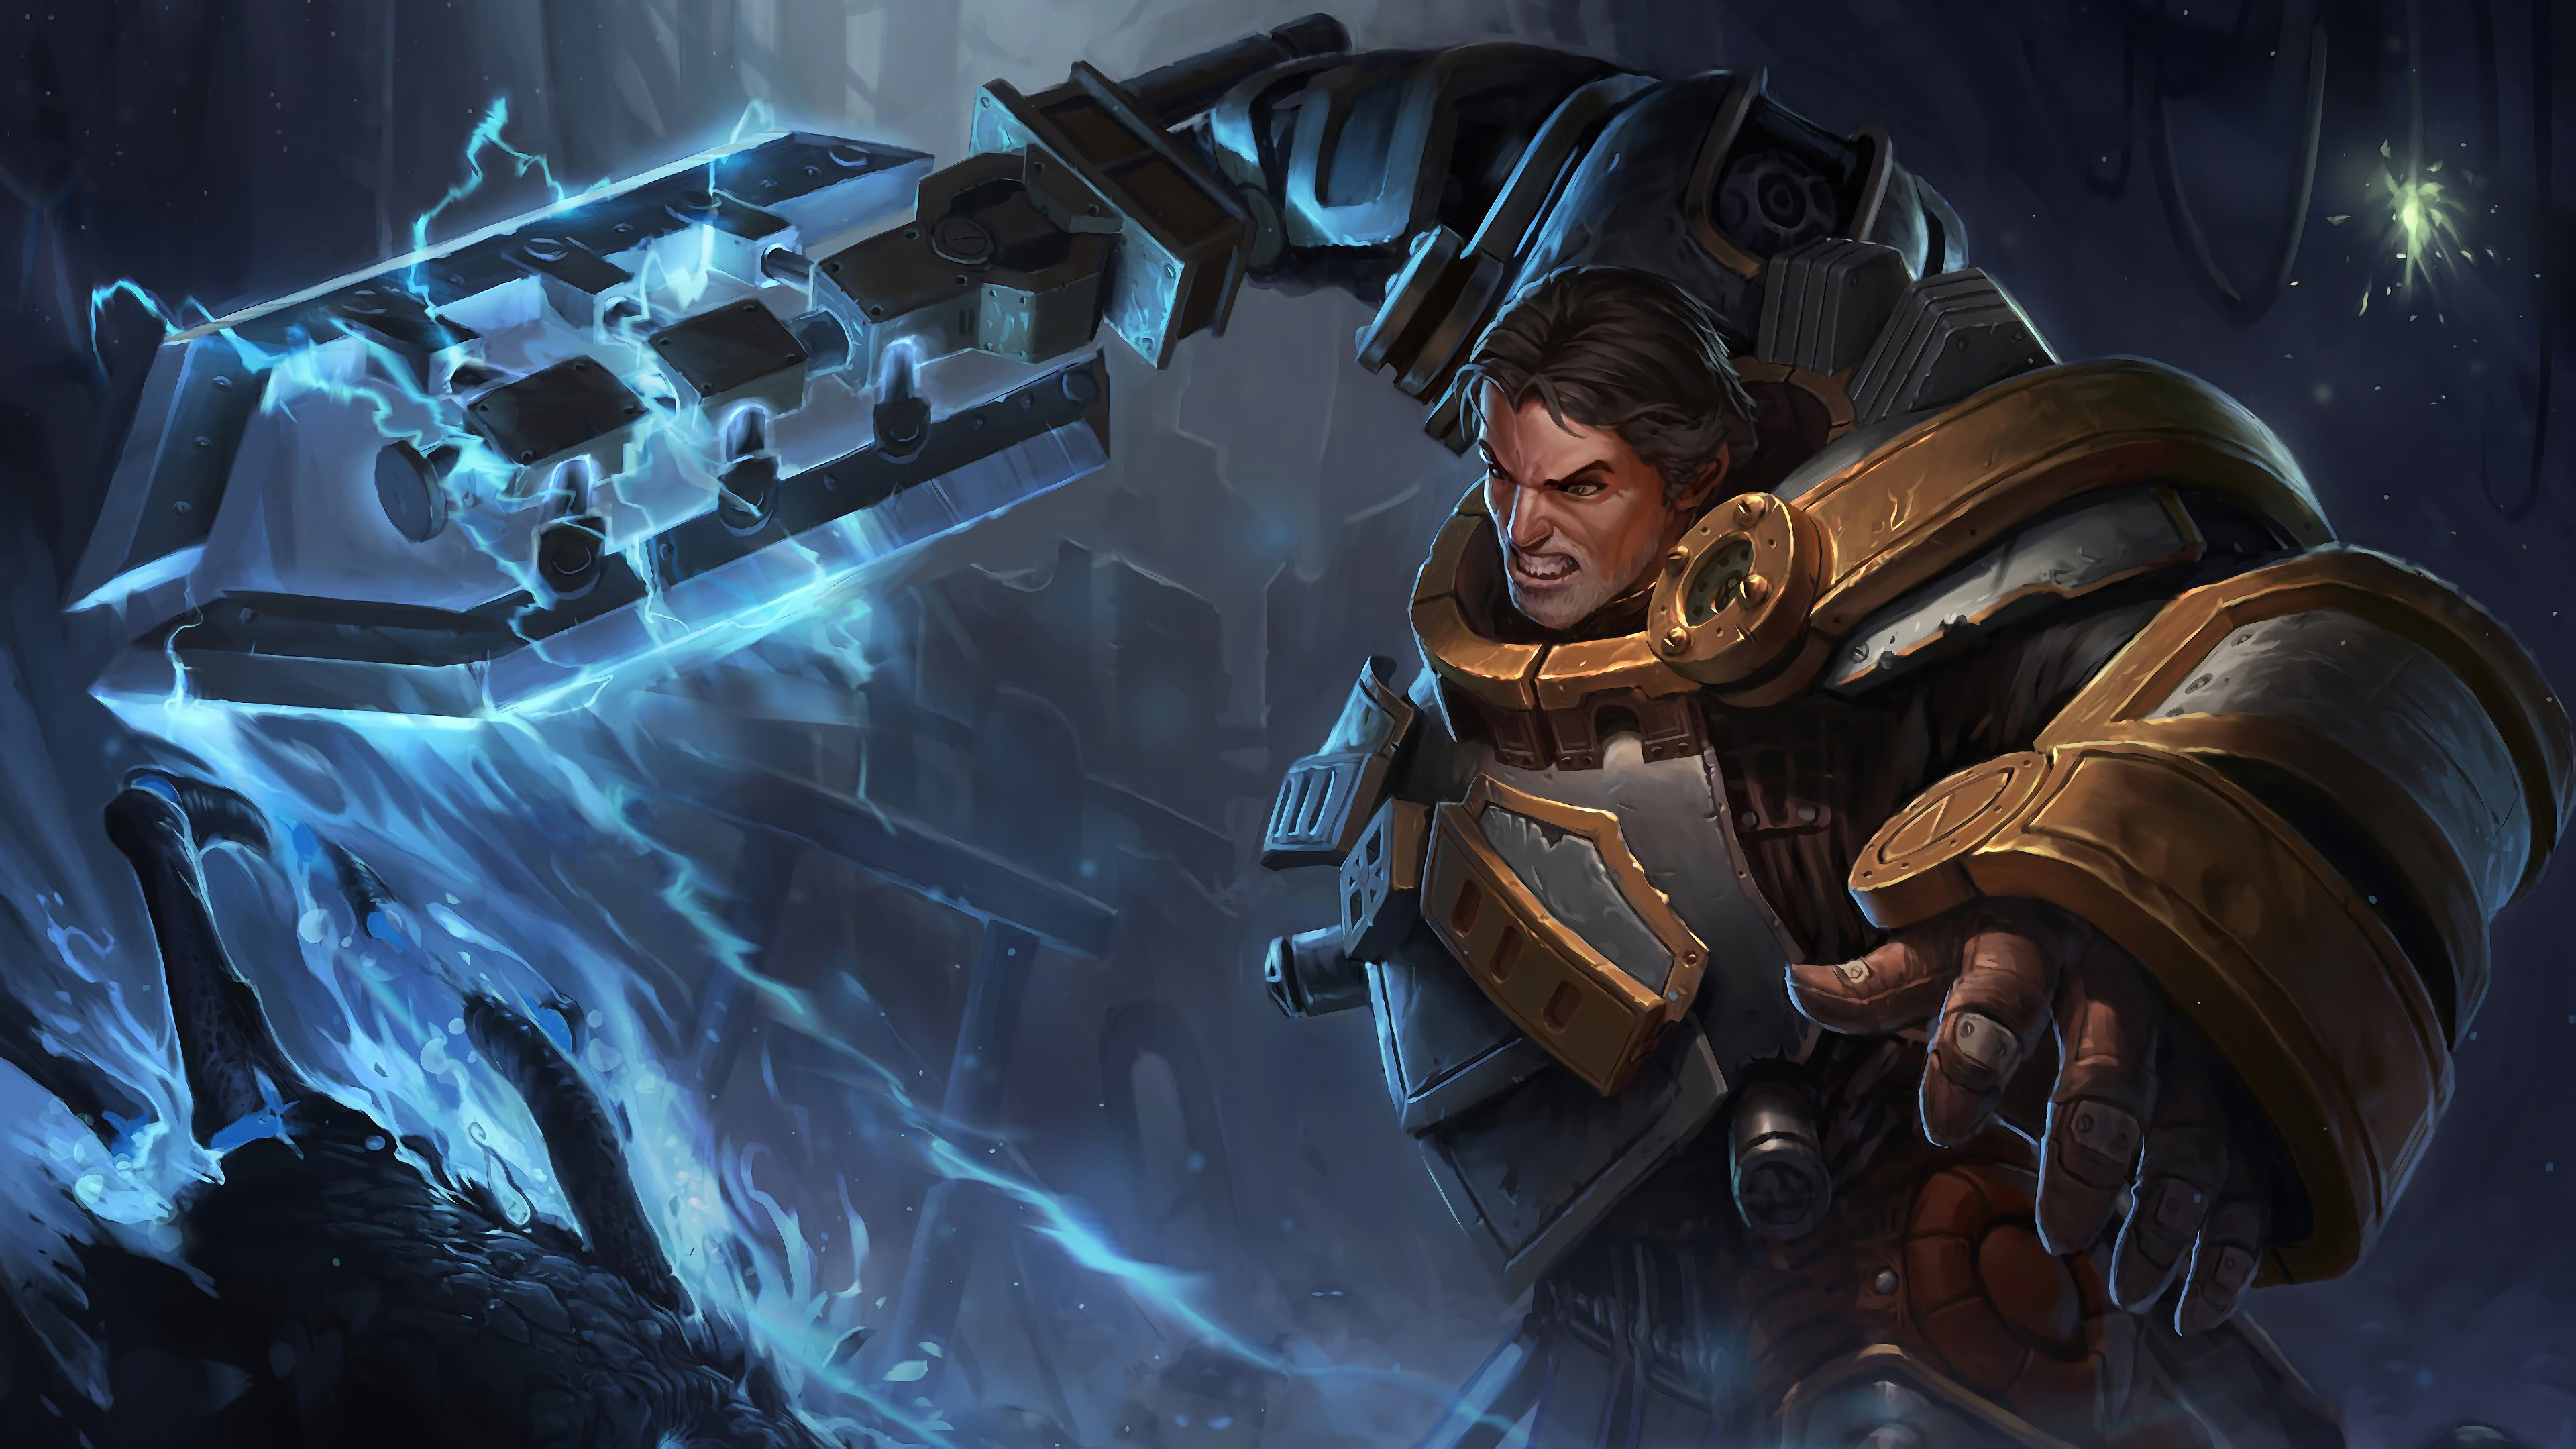 steel legion garen lol splash art league of legends lol 1574101864 - Steel Legion Garen LoL Splash Art League of Legends lol - league of legends, Garen